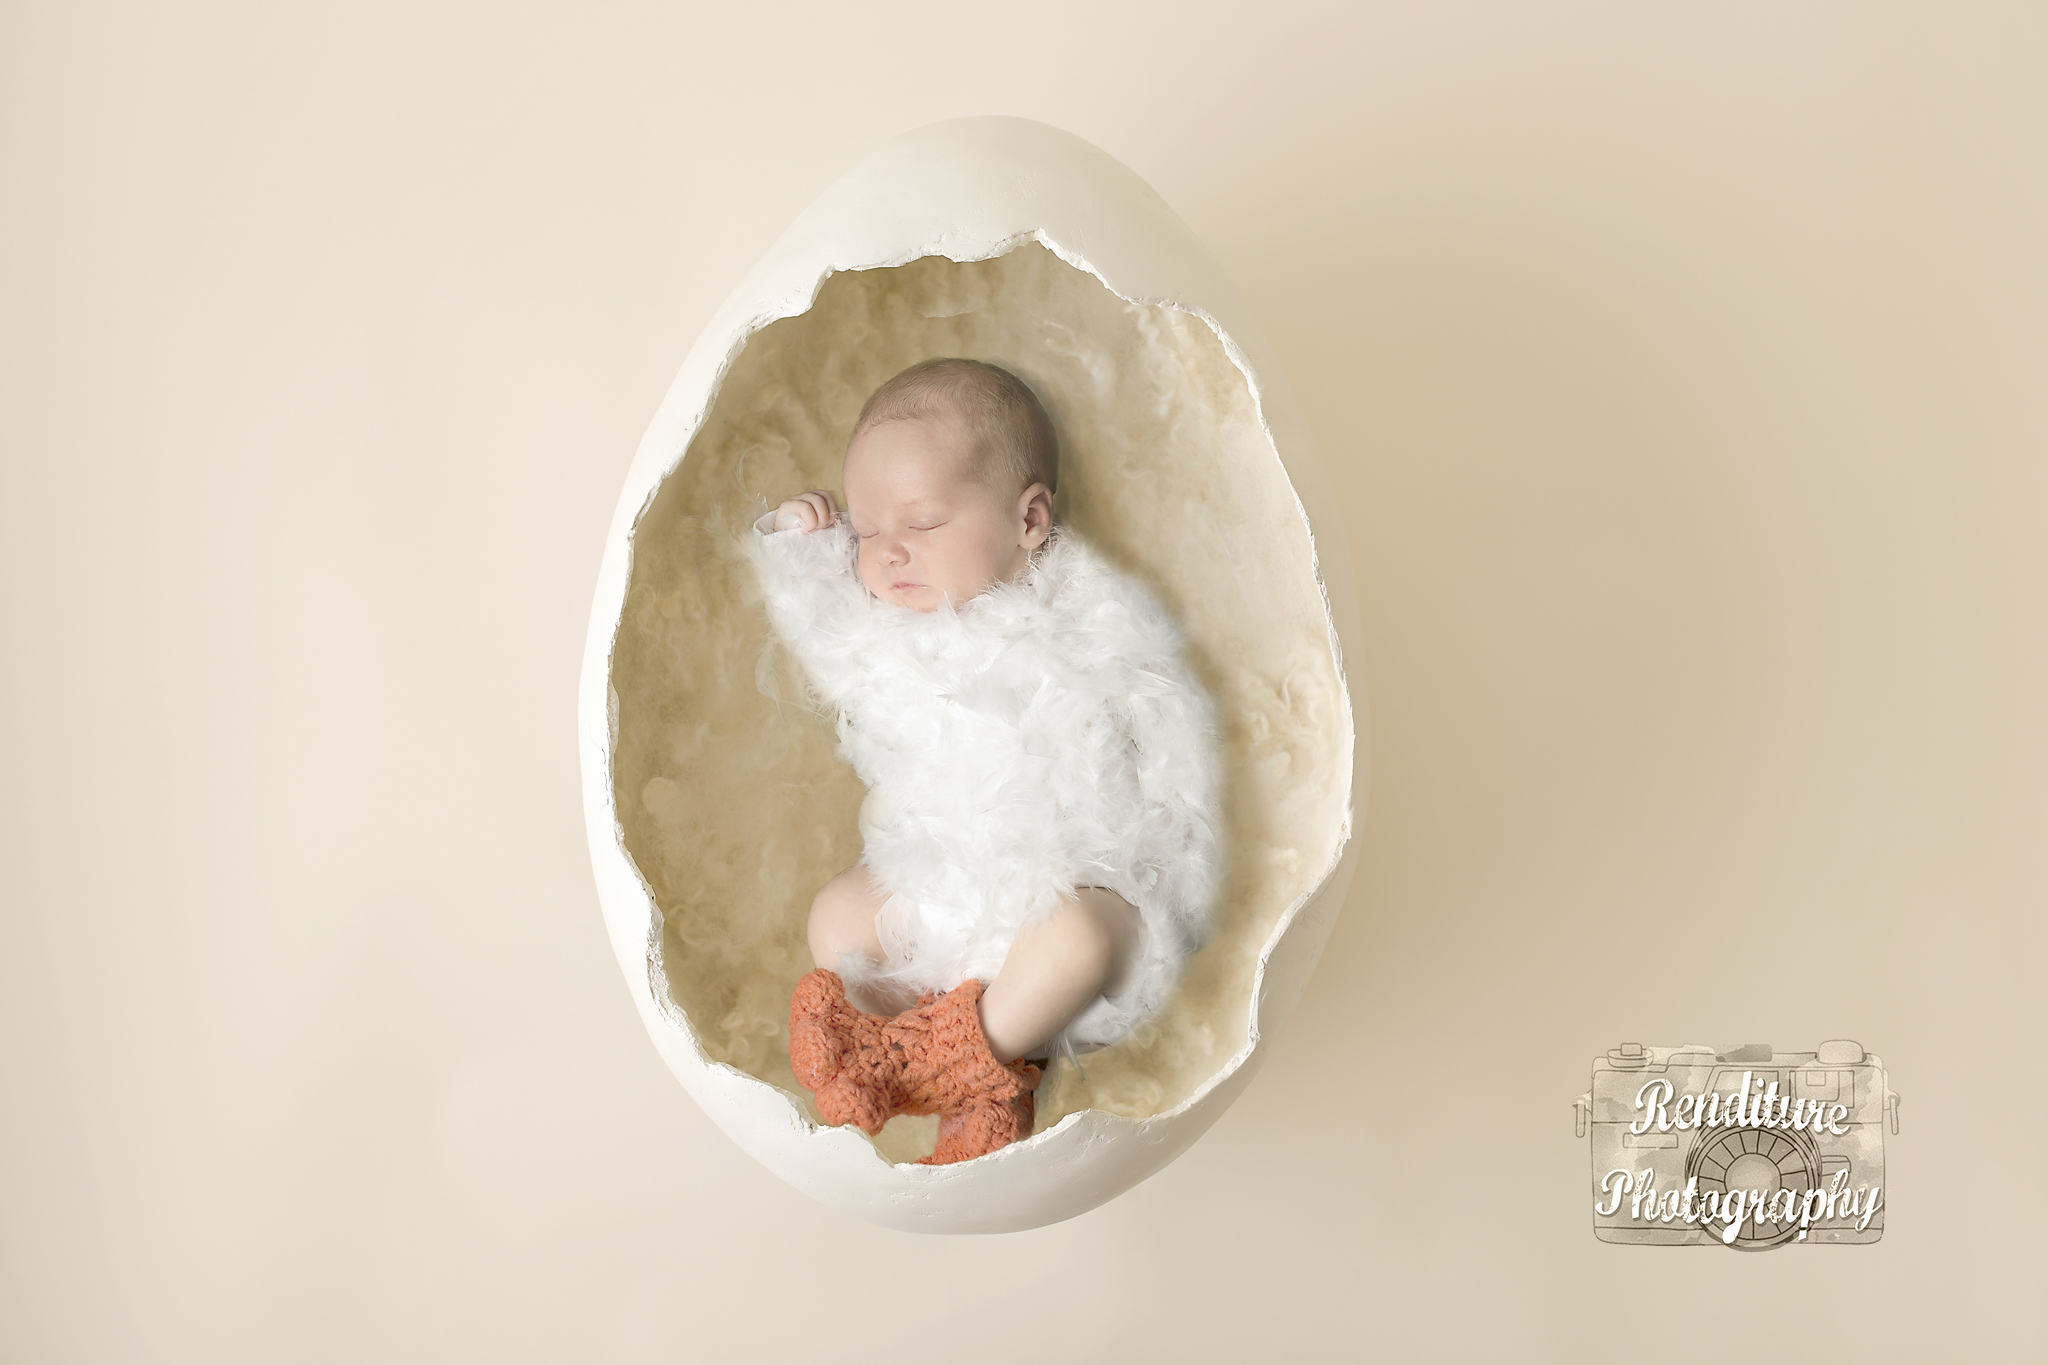 Saskatoon-Newborn-Family-Renditure-Baby-Photography-Photographer-Maternity-Pregnancy-Saskatchewan-288 FBR.jpg